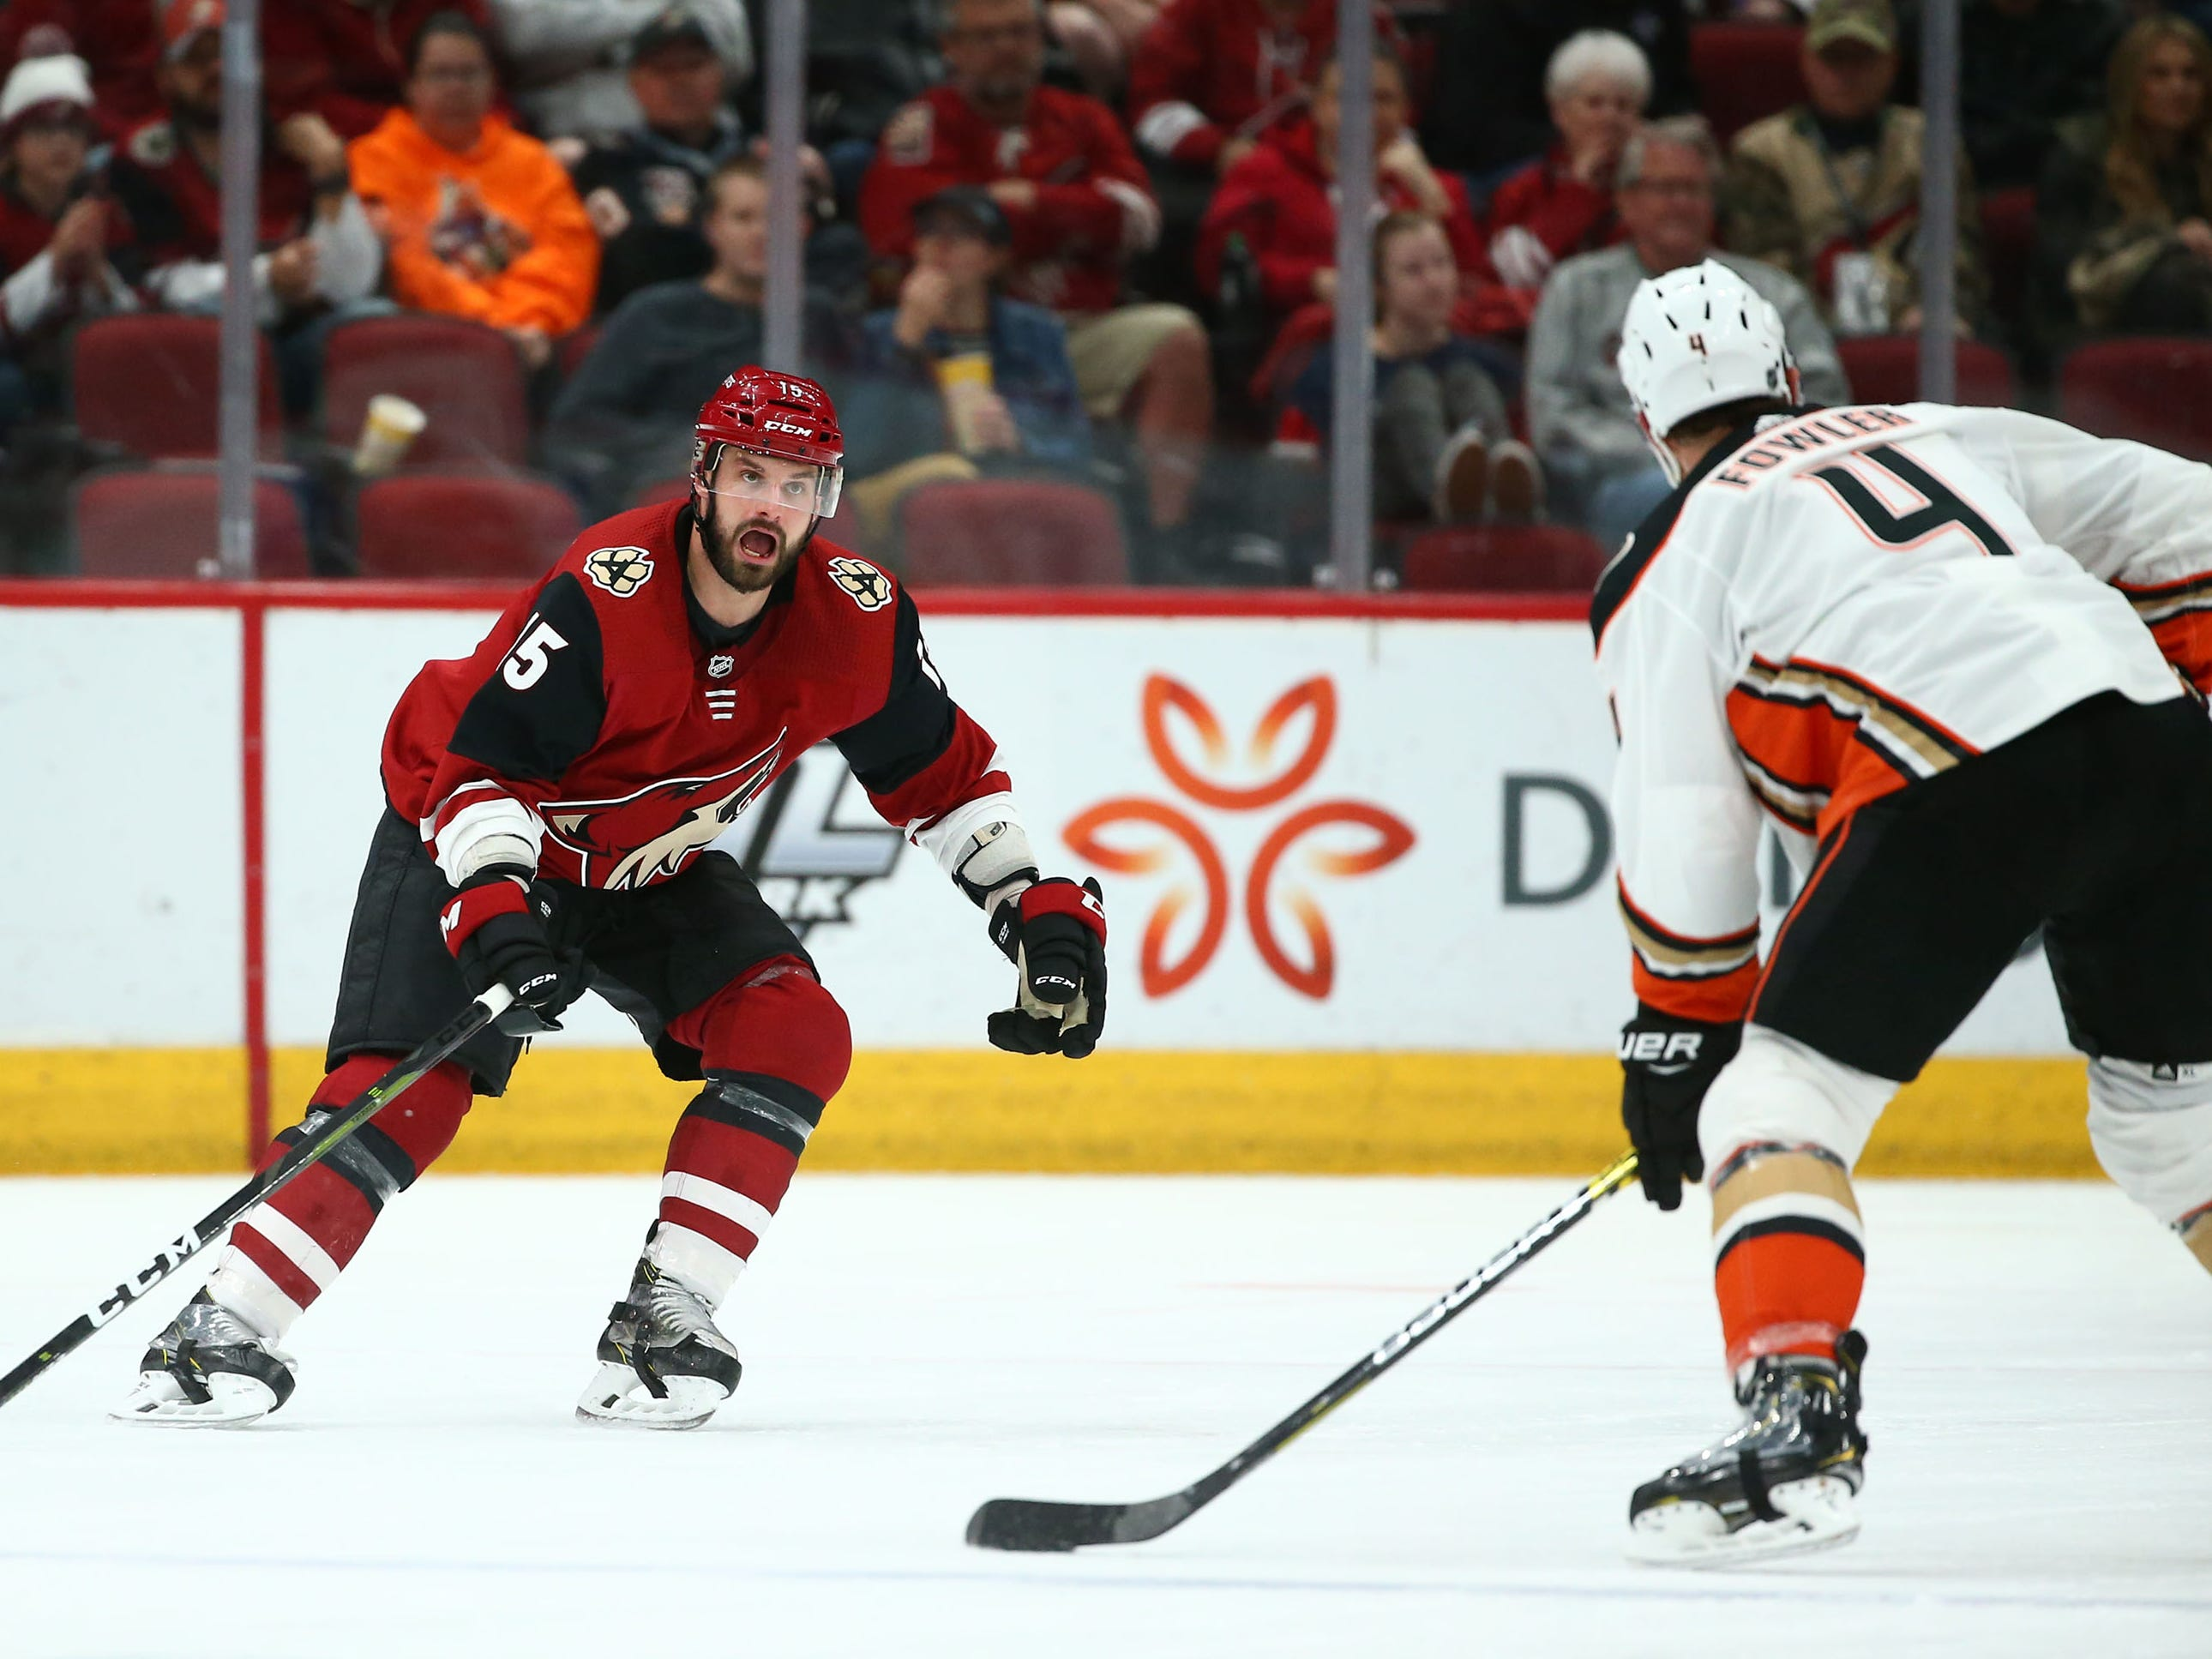 Arizona Coyotes center Brad Richardson (15) guards Anaheim Ducks defenseman Cam Fowler (4) in the second period on Mar. 5, 2019, at Gila River Arena in Glendale, Ariz.